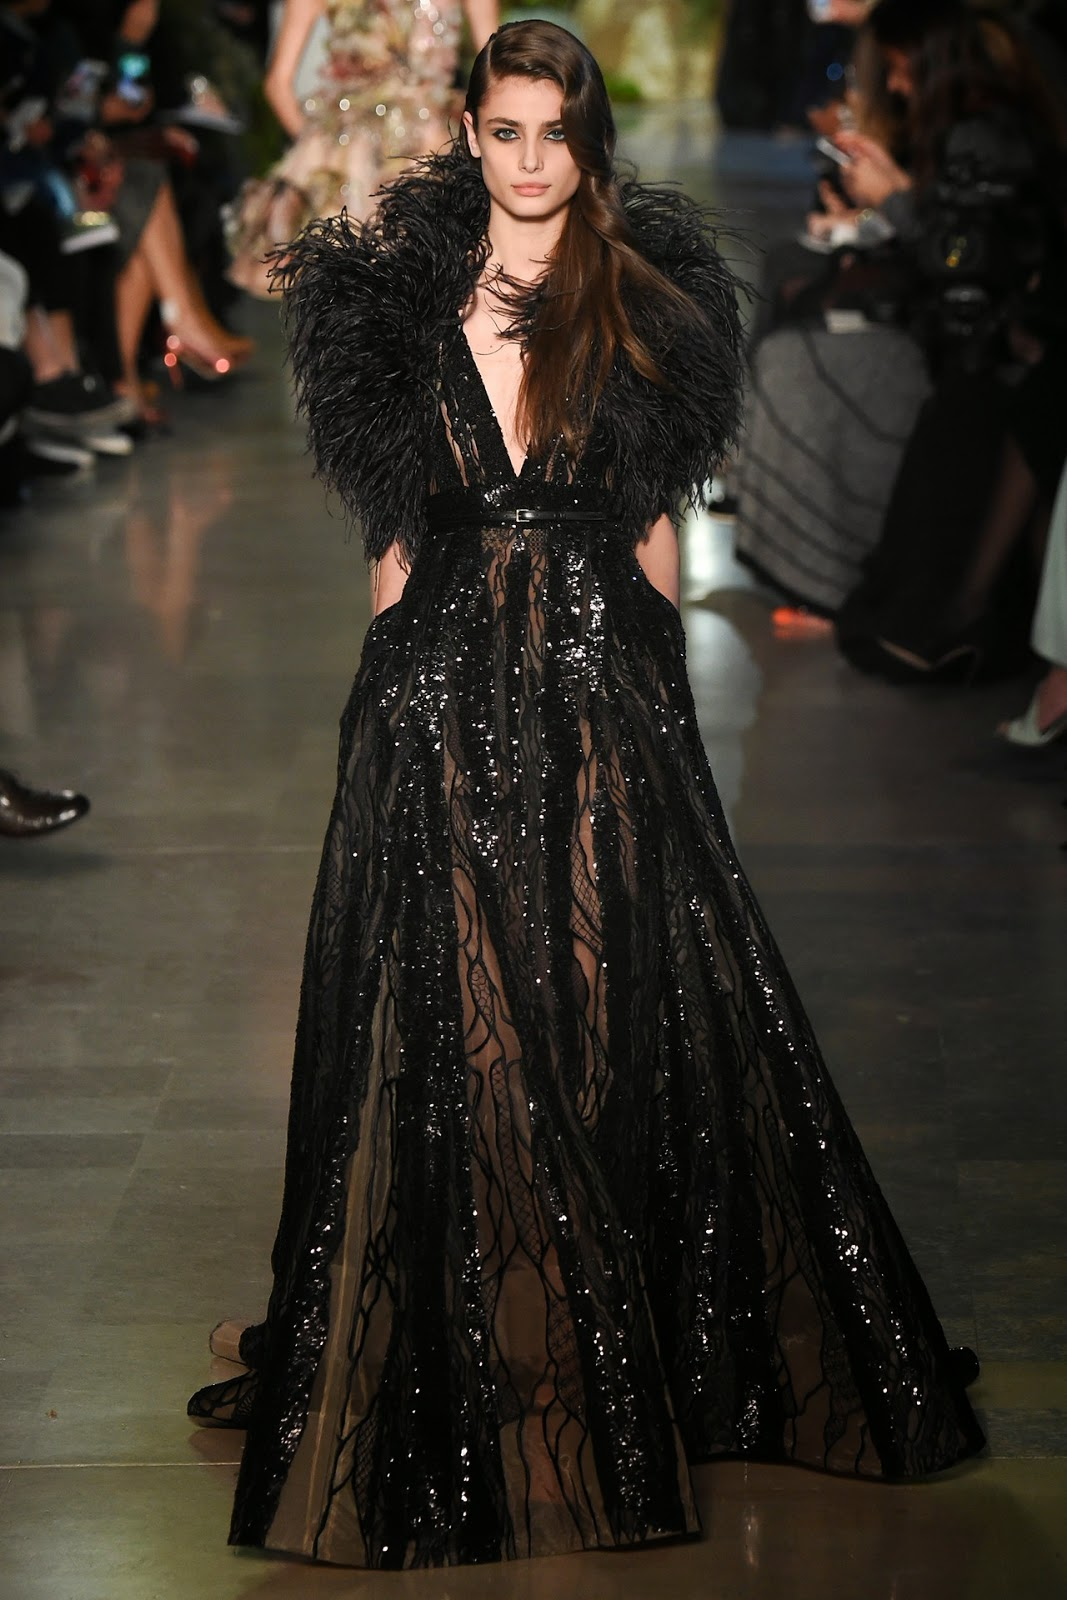 Mode sty designer crush elie saab haute couture 2015 for 2015 haute couture